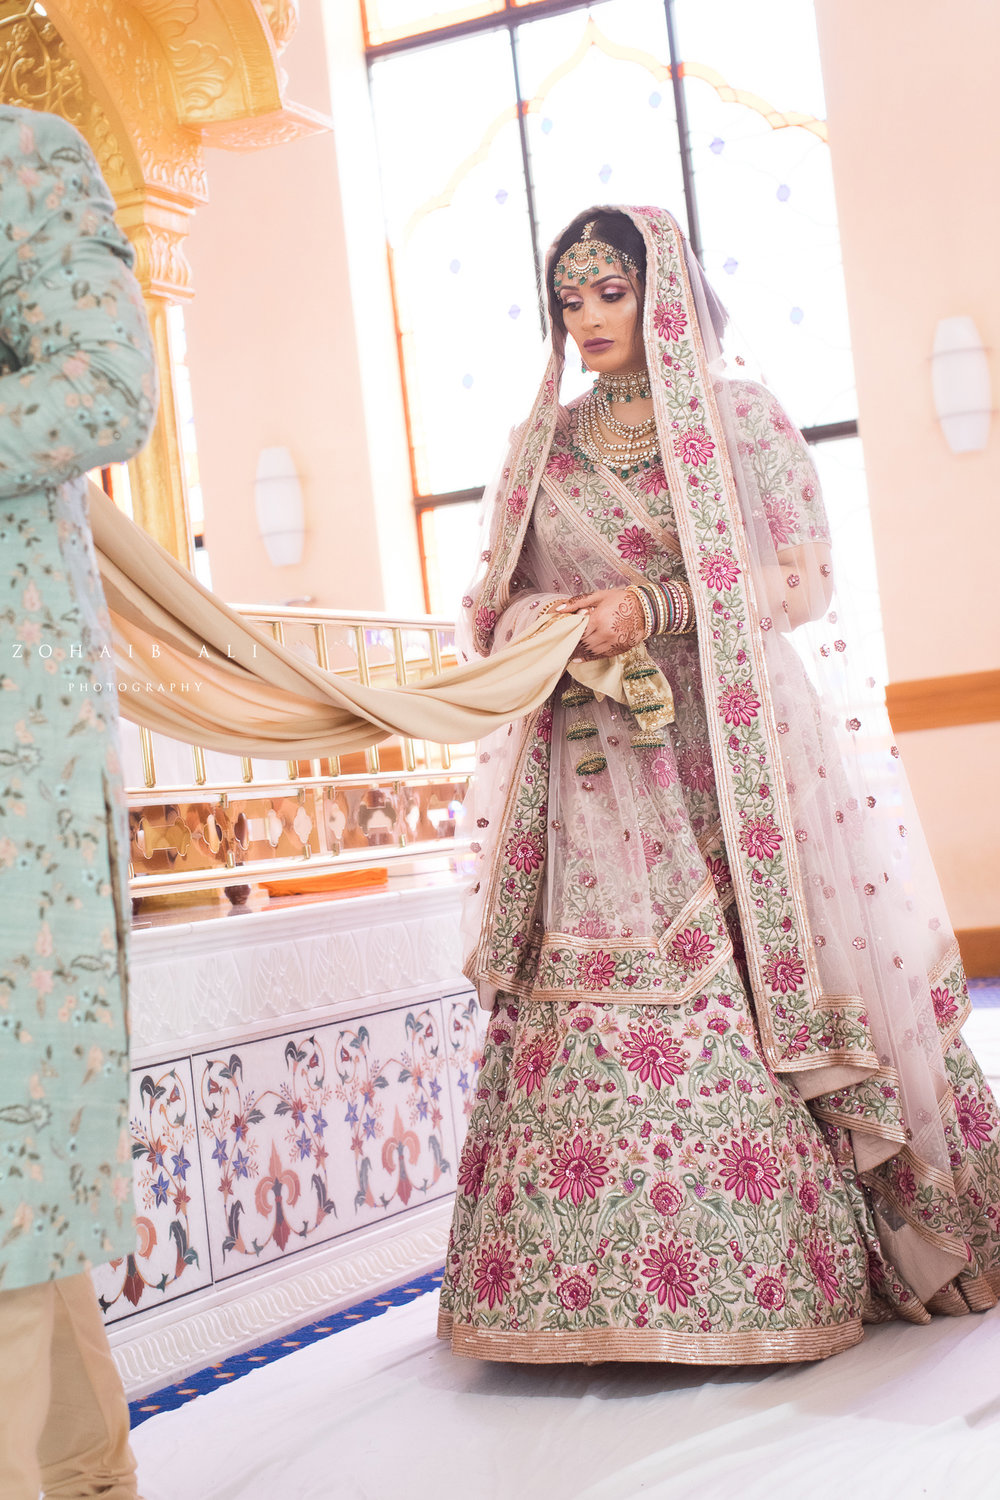 Zohaib Ali Indian Wedding Photographer_3.jpg